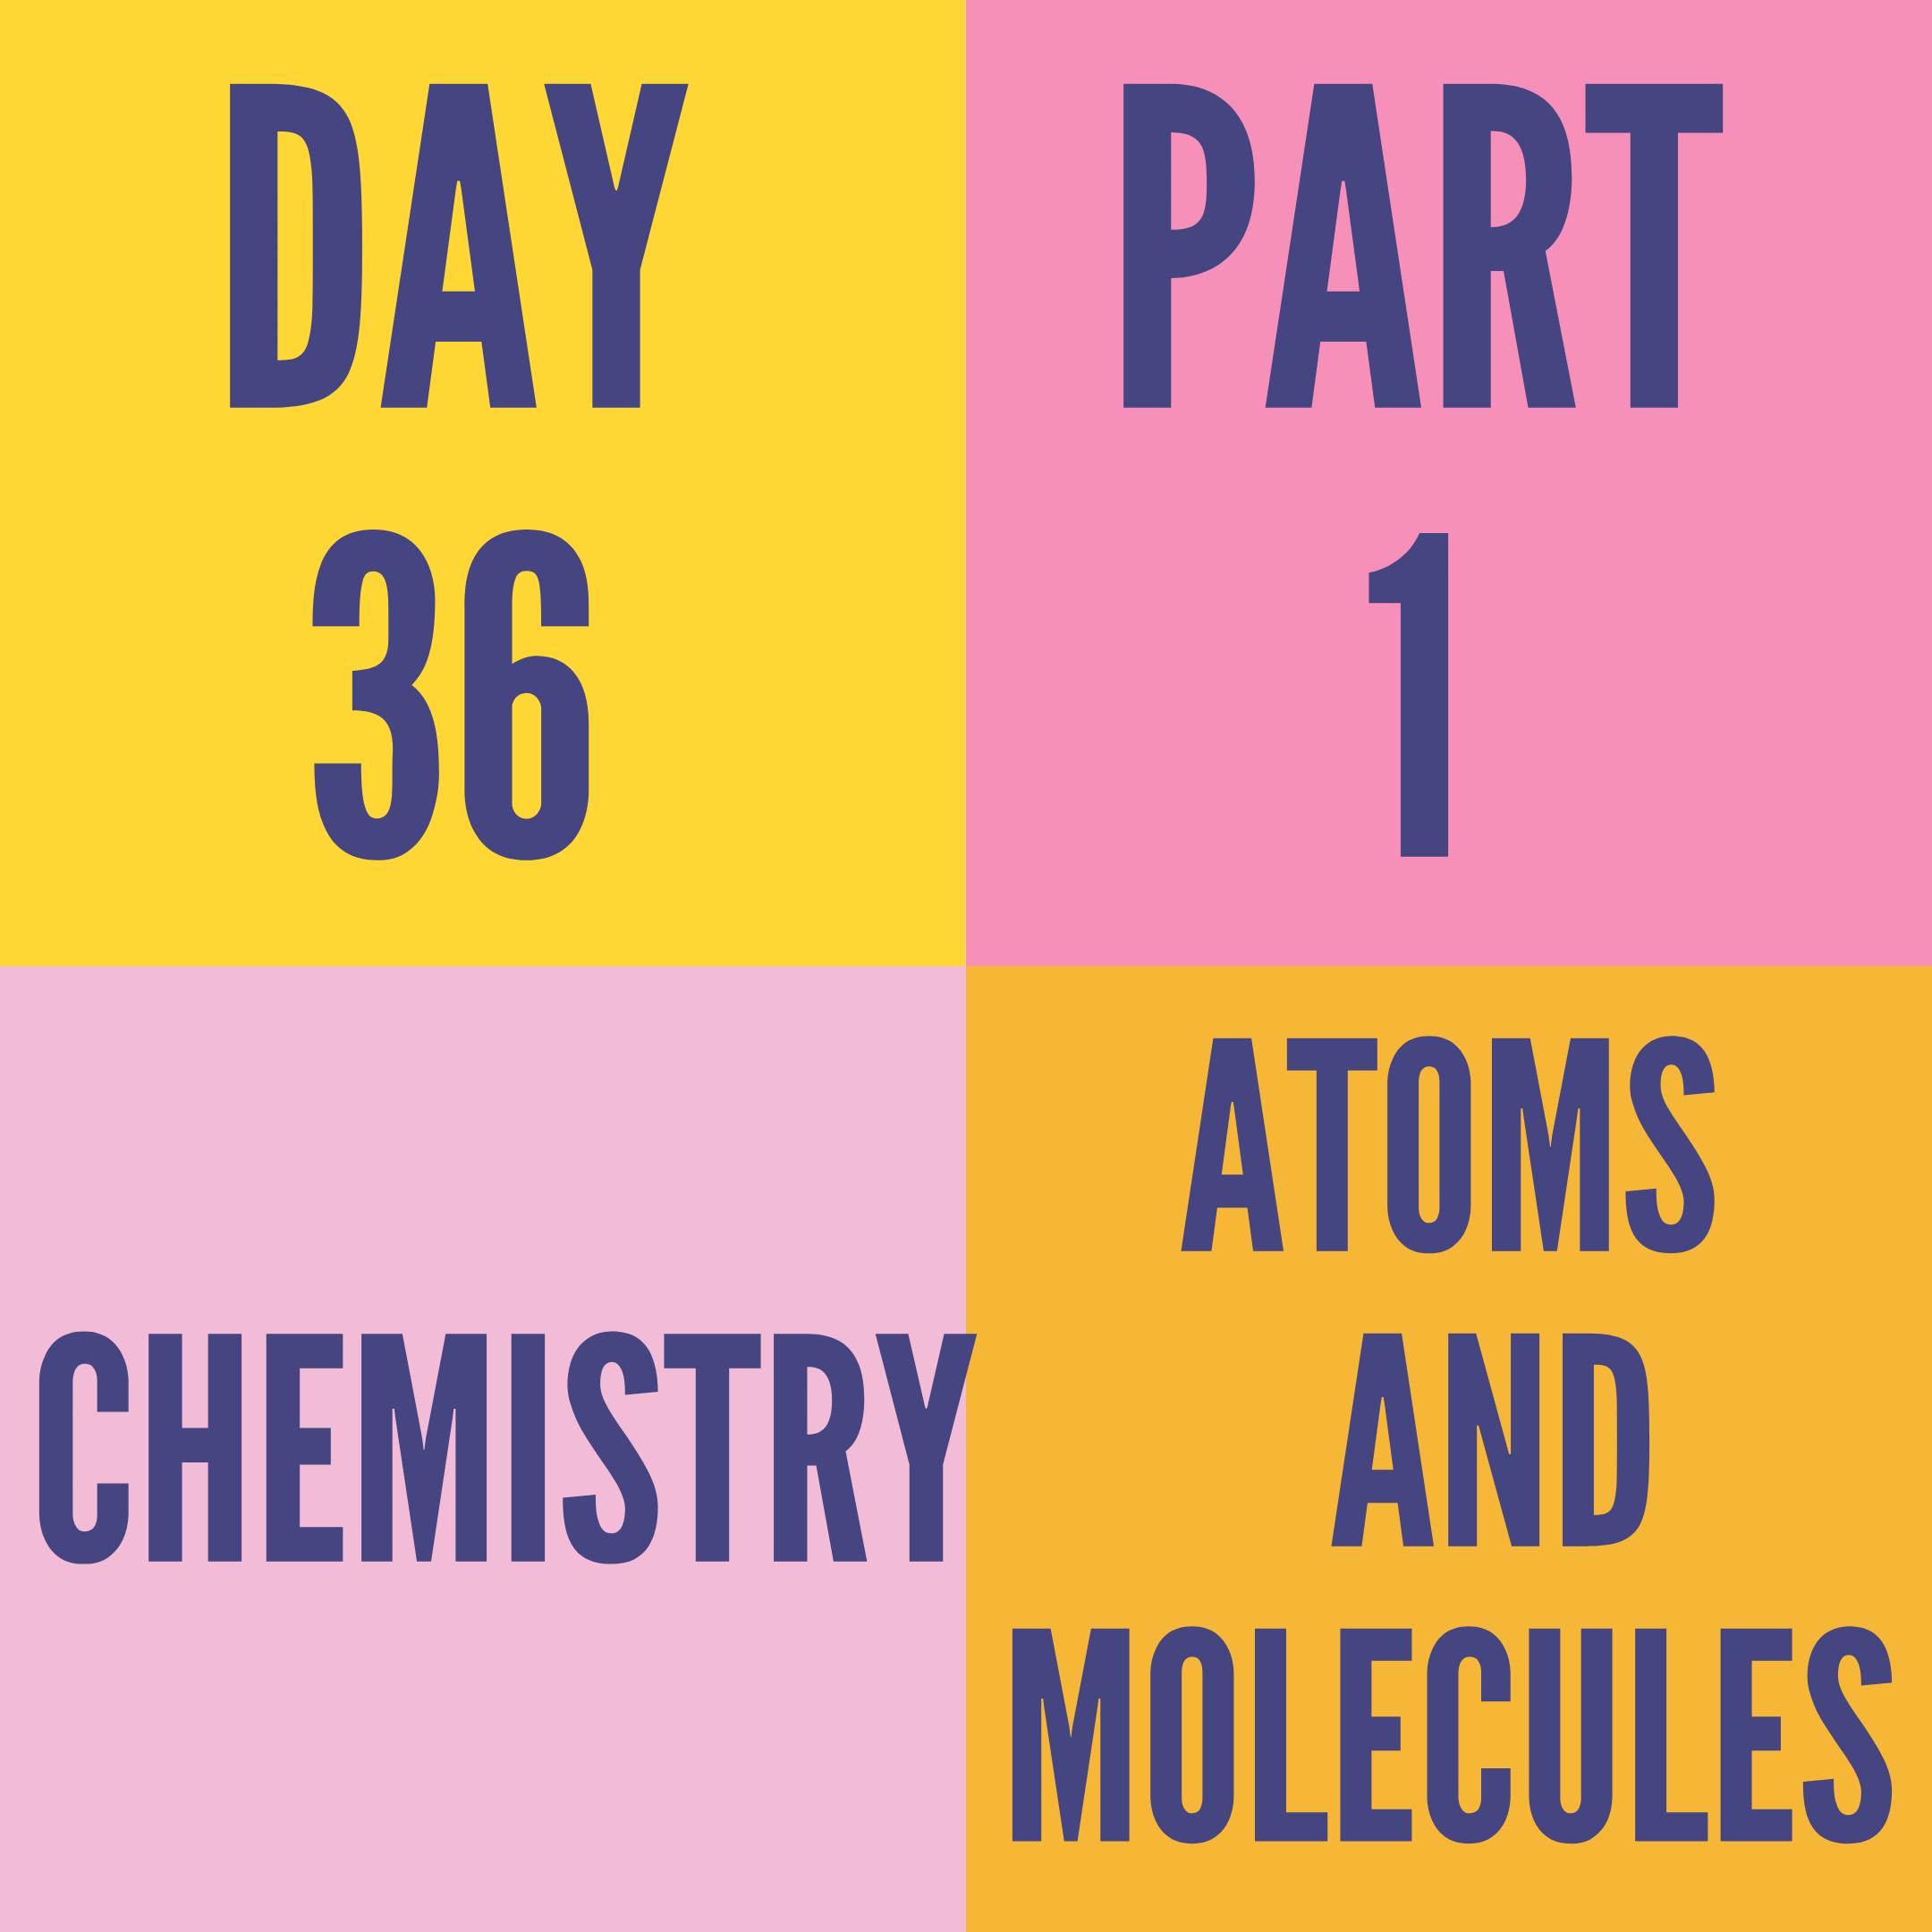 DAY-36 PART-1 ATOMS AND MOLECULES